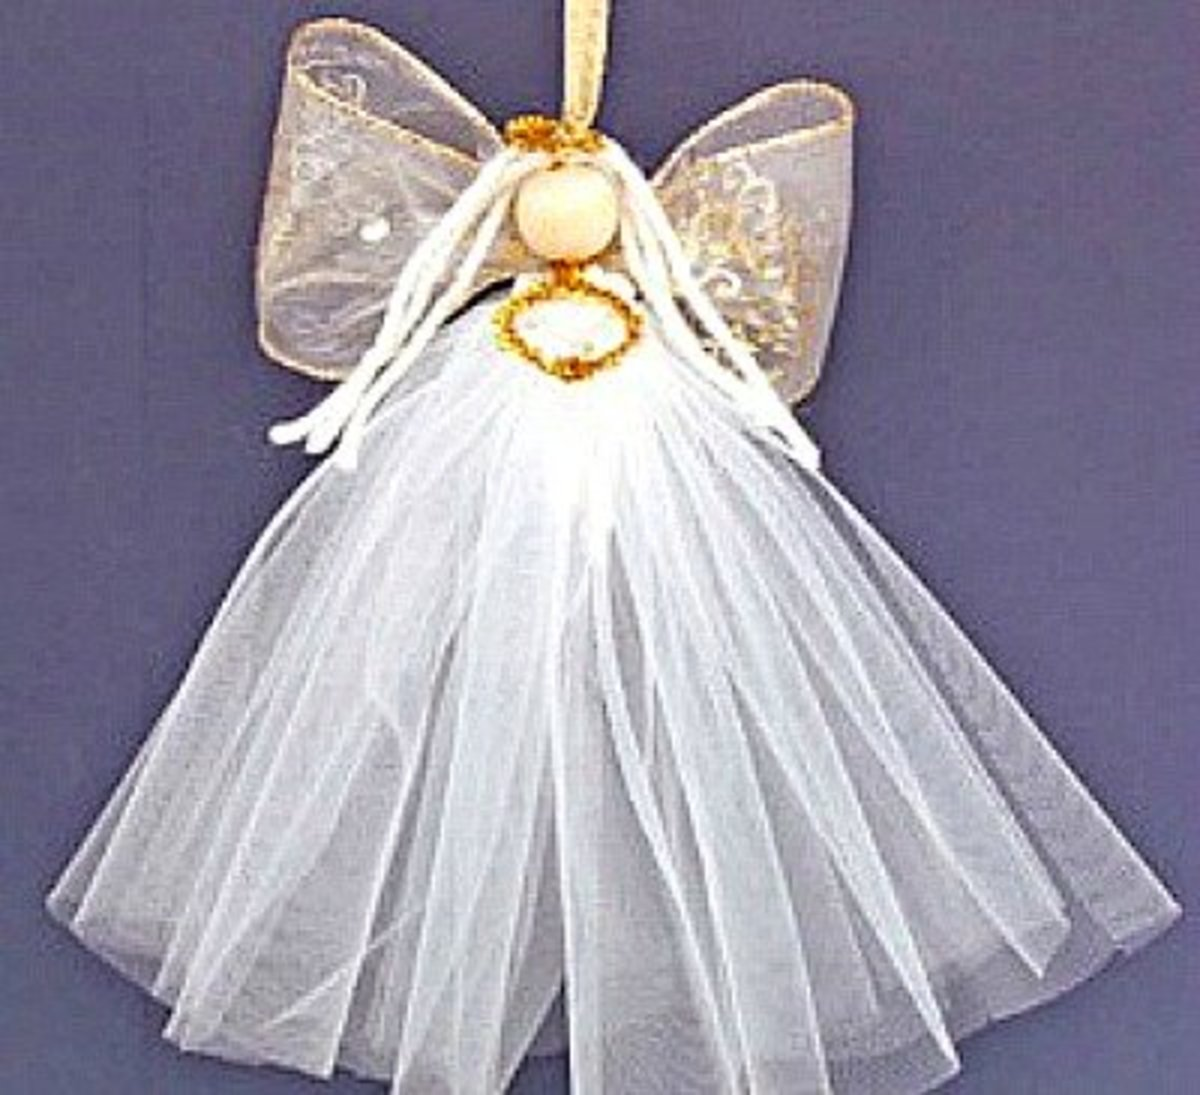 Angel Decorations To Make: 49 Awesome Angel Crafts